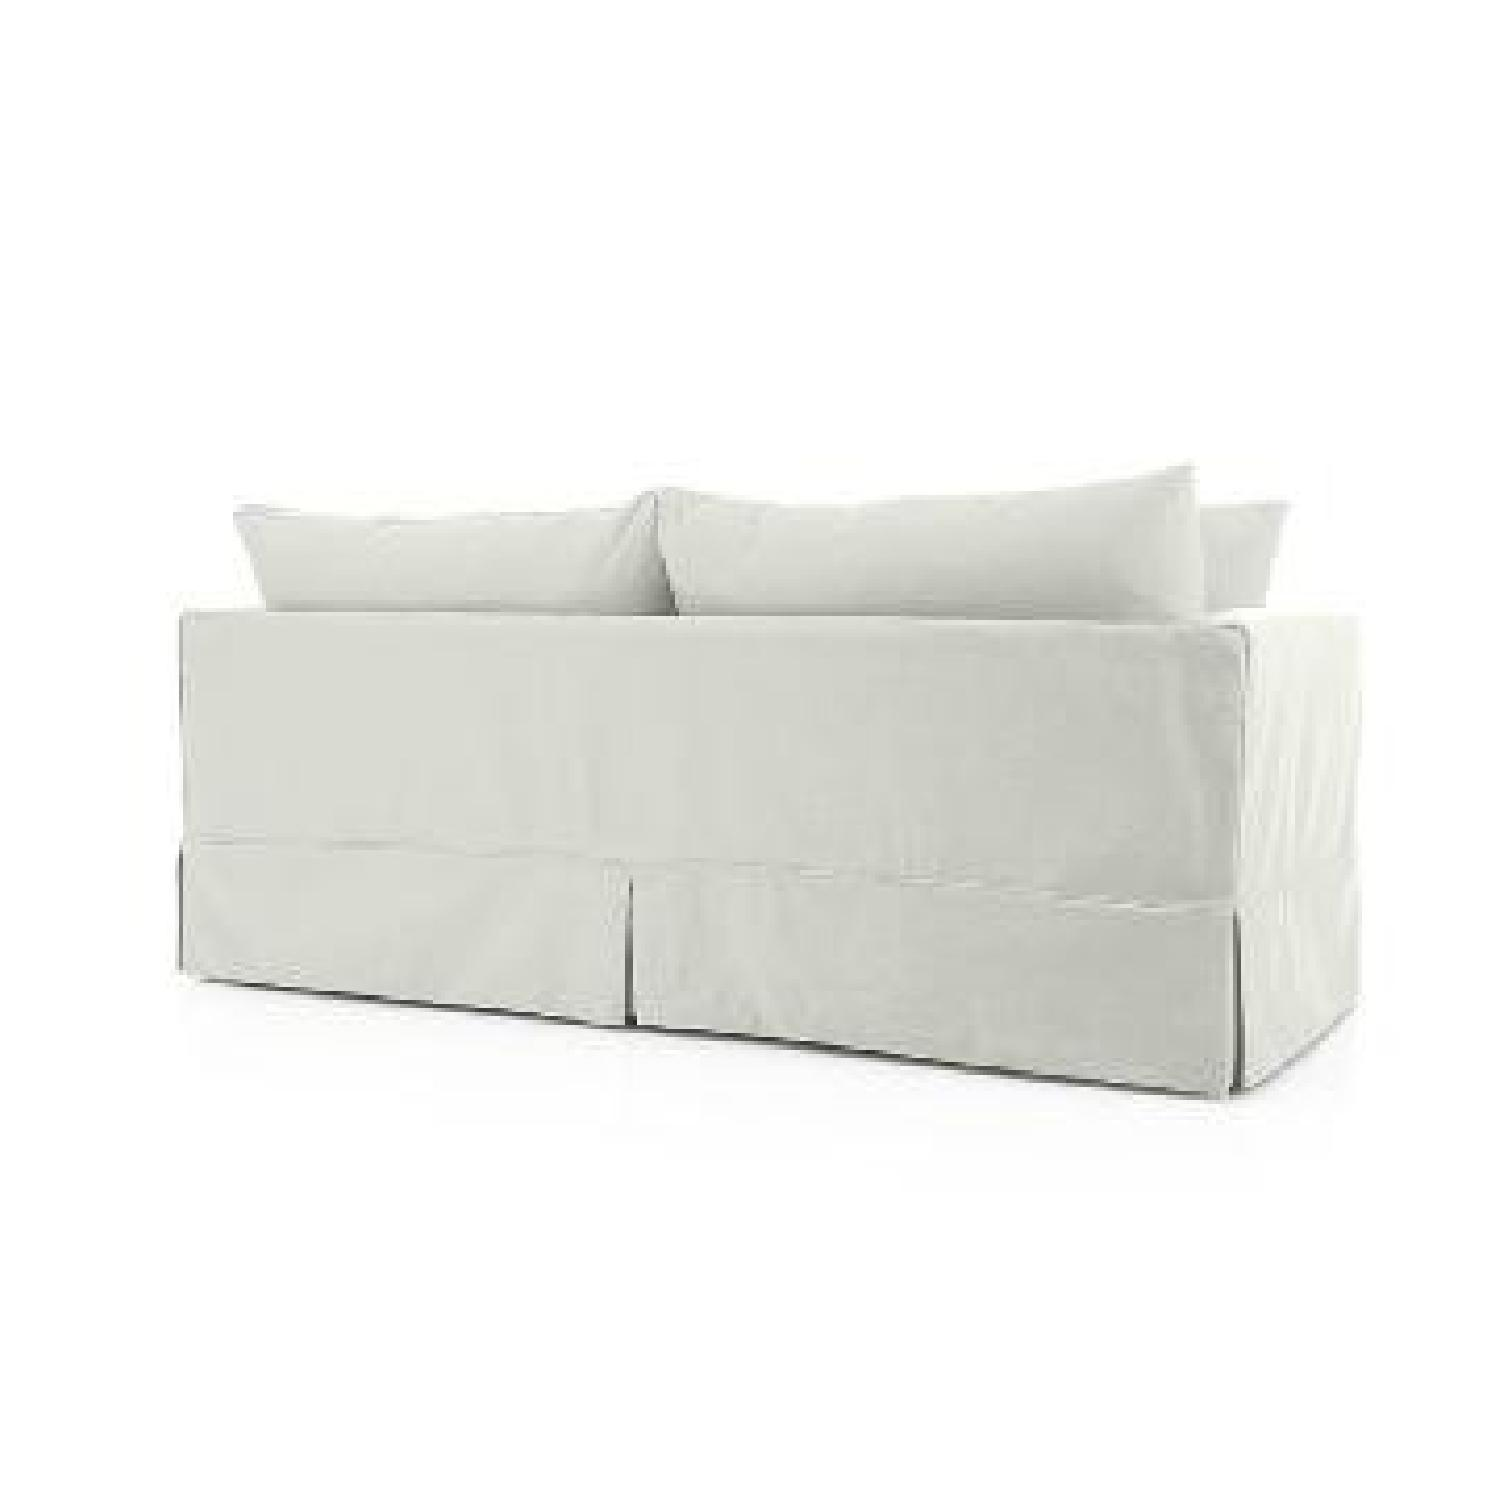 Crate & Barrel Willow Queen Sleeper Sofa - image-4